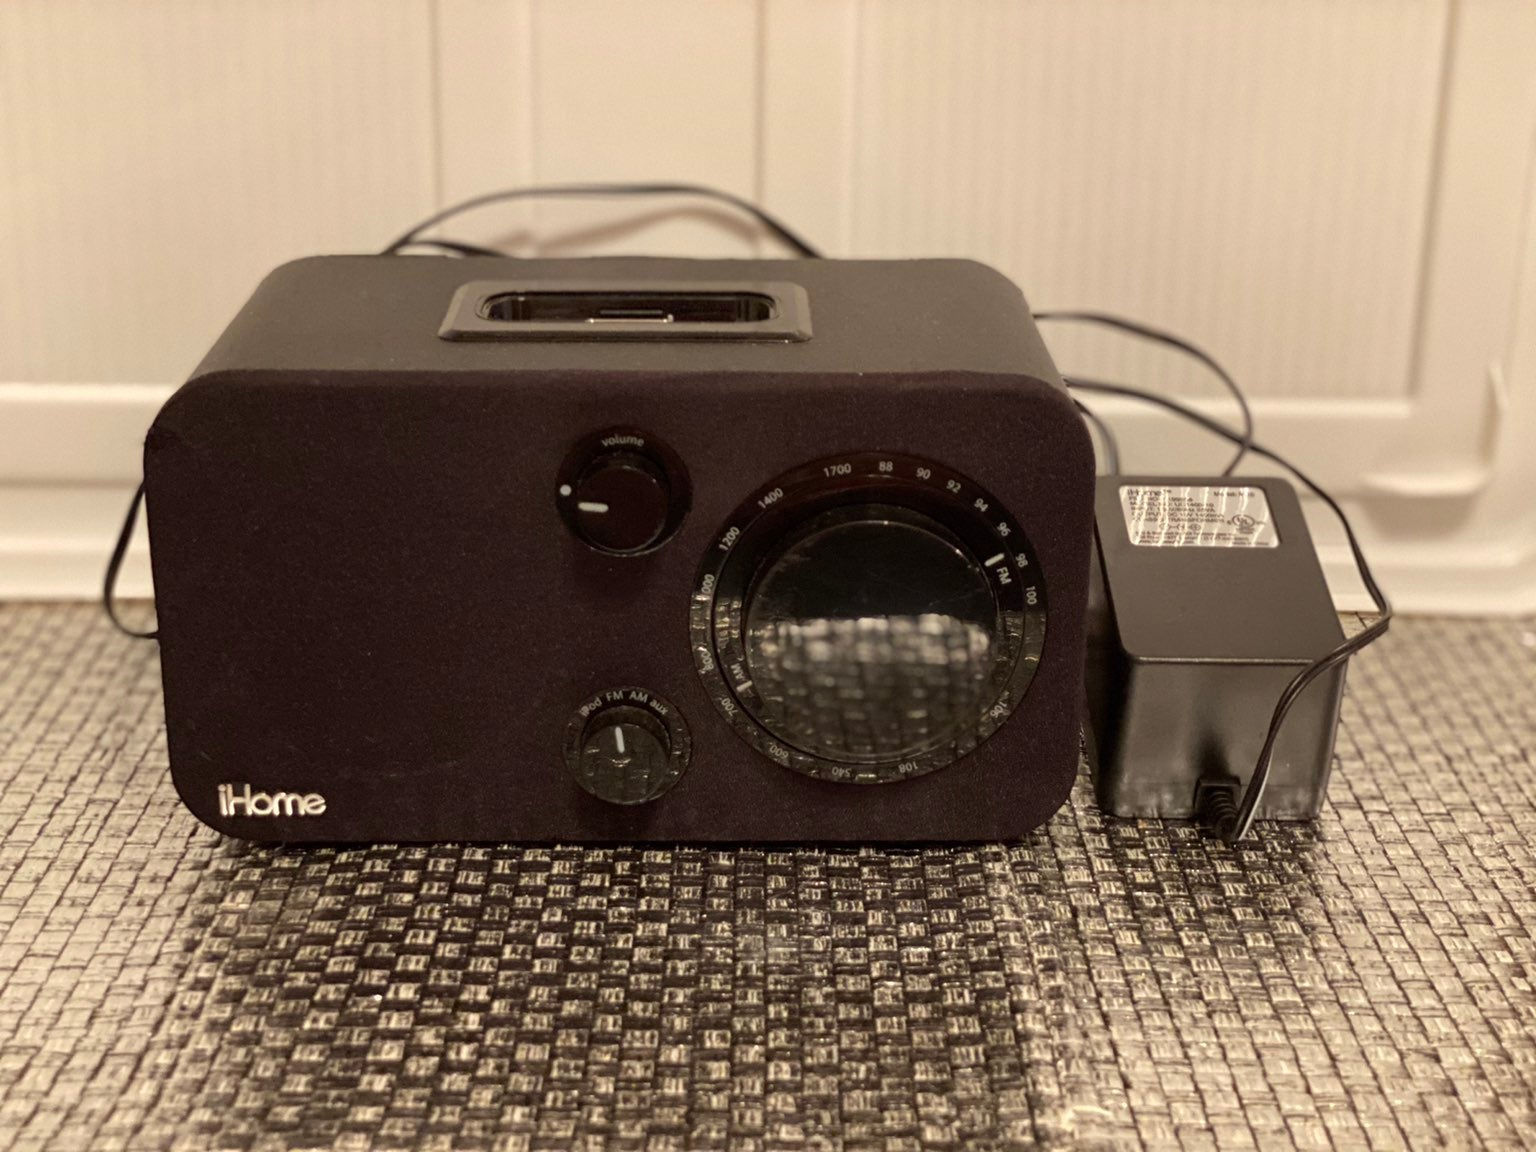 iHome AM/FM for your iPod